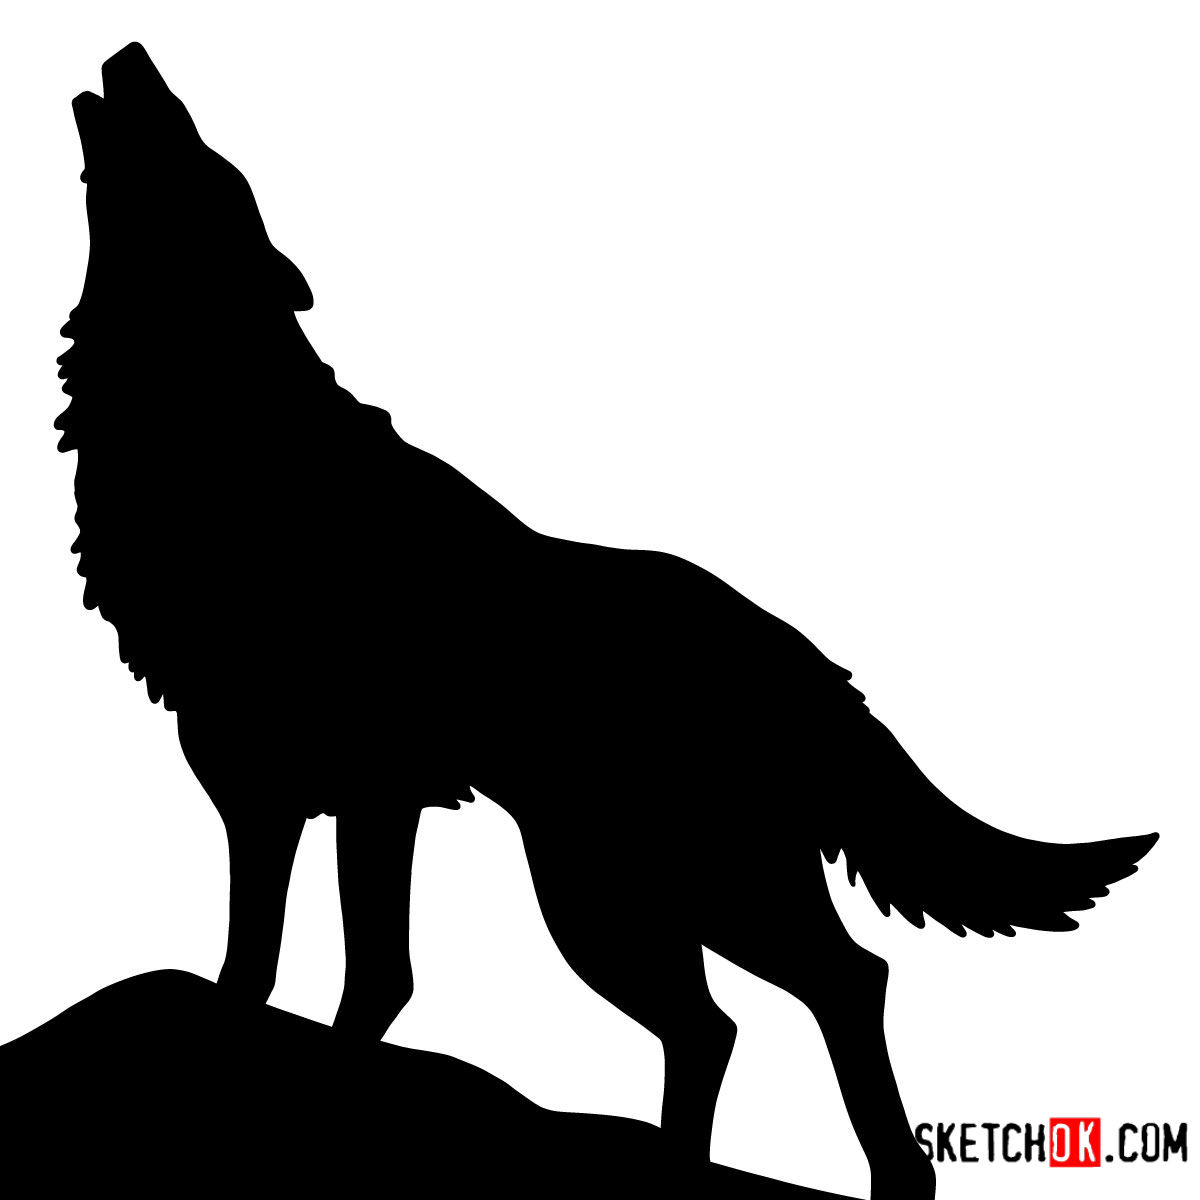 How to draw Howling Wolf Silhouette